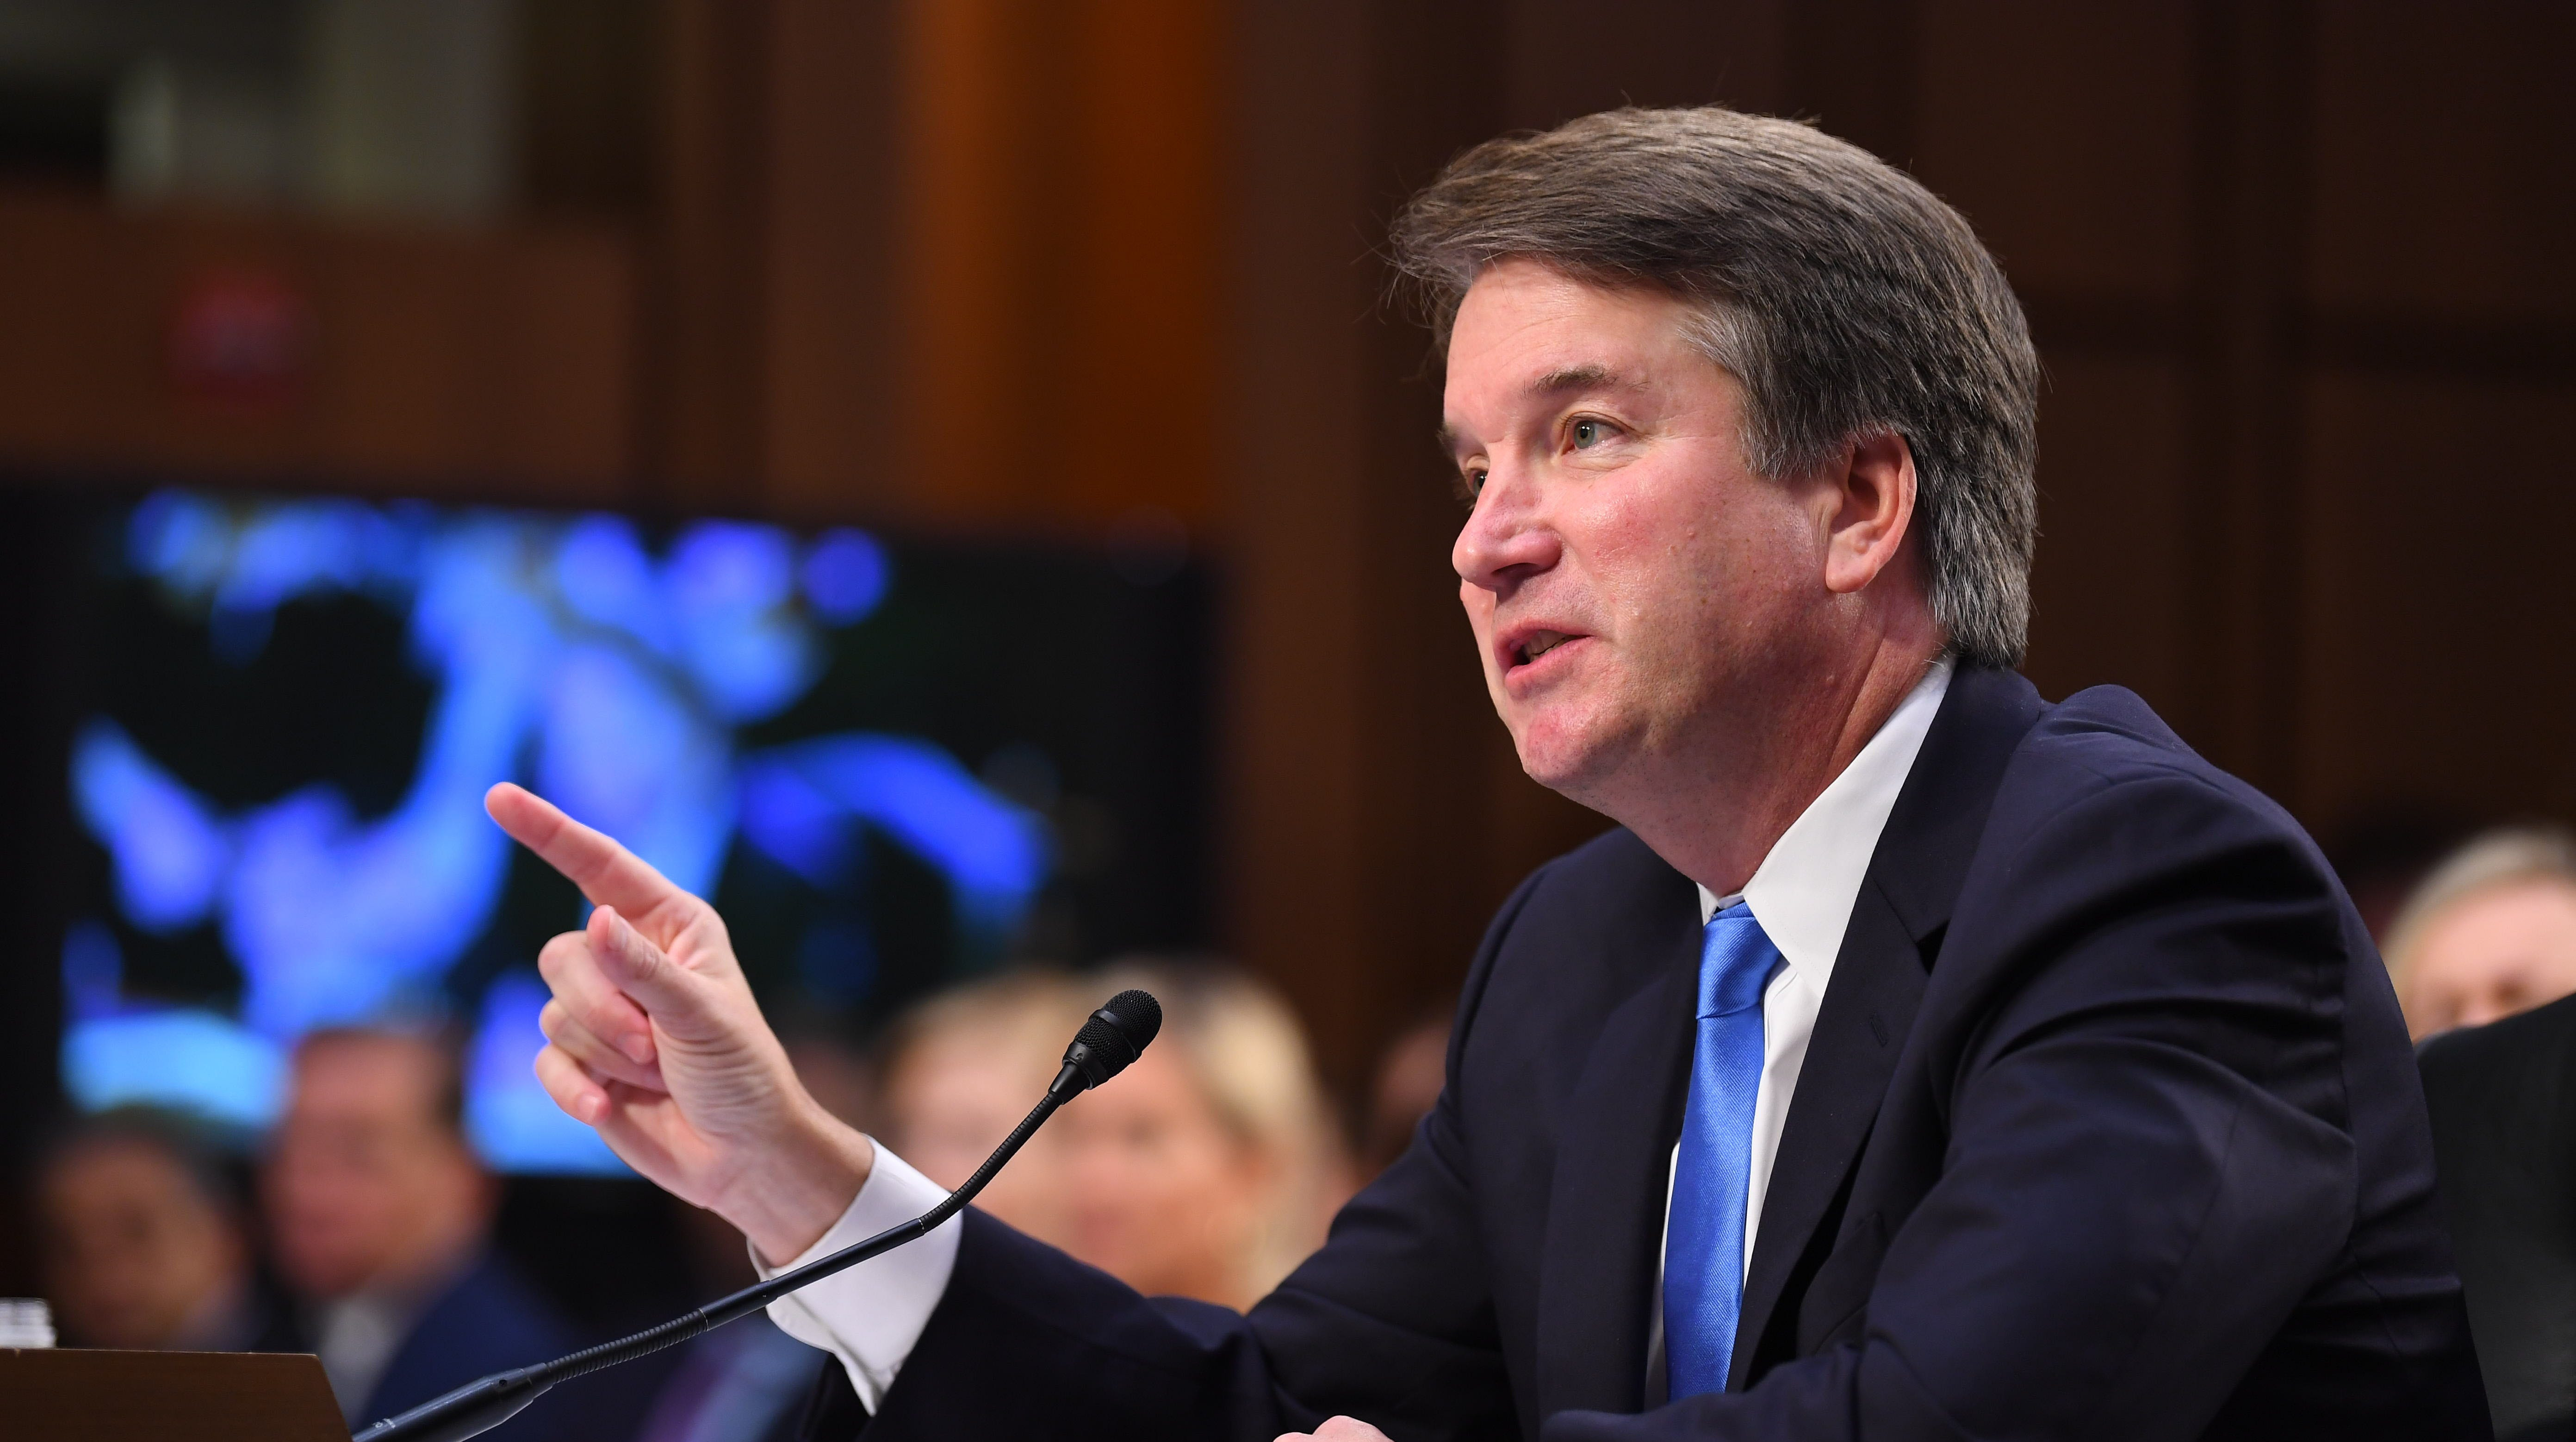 Supreme Court Associate Justice nominee Brett Kavanaugh appears before the Senate Judiciary Committee during his confirmation hearing on Sept. 5, 2018.